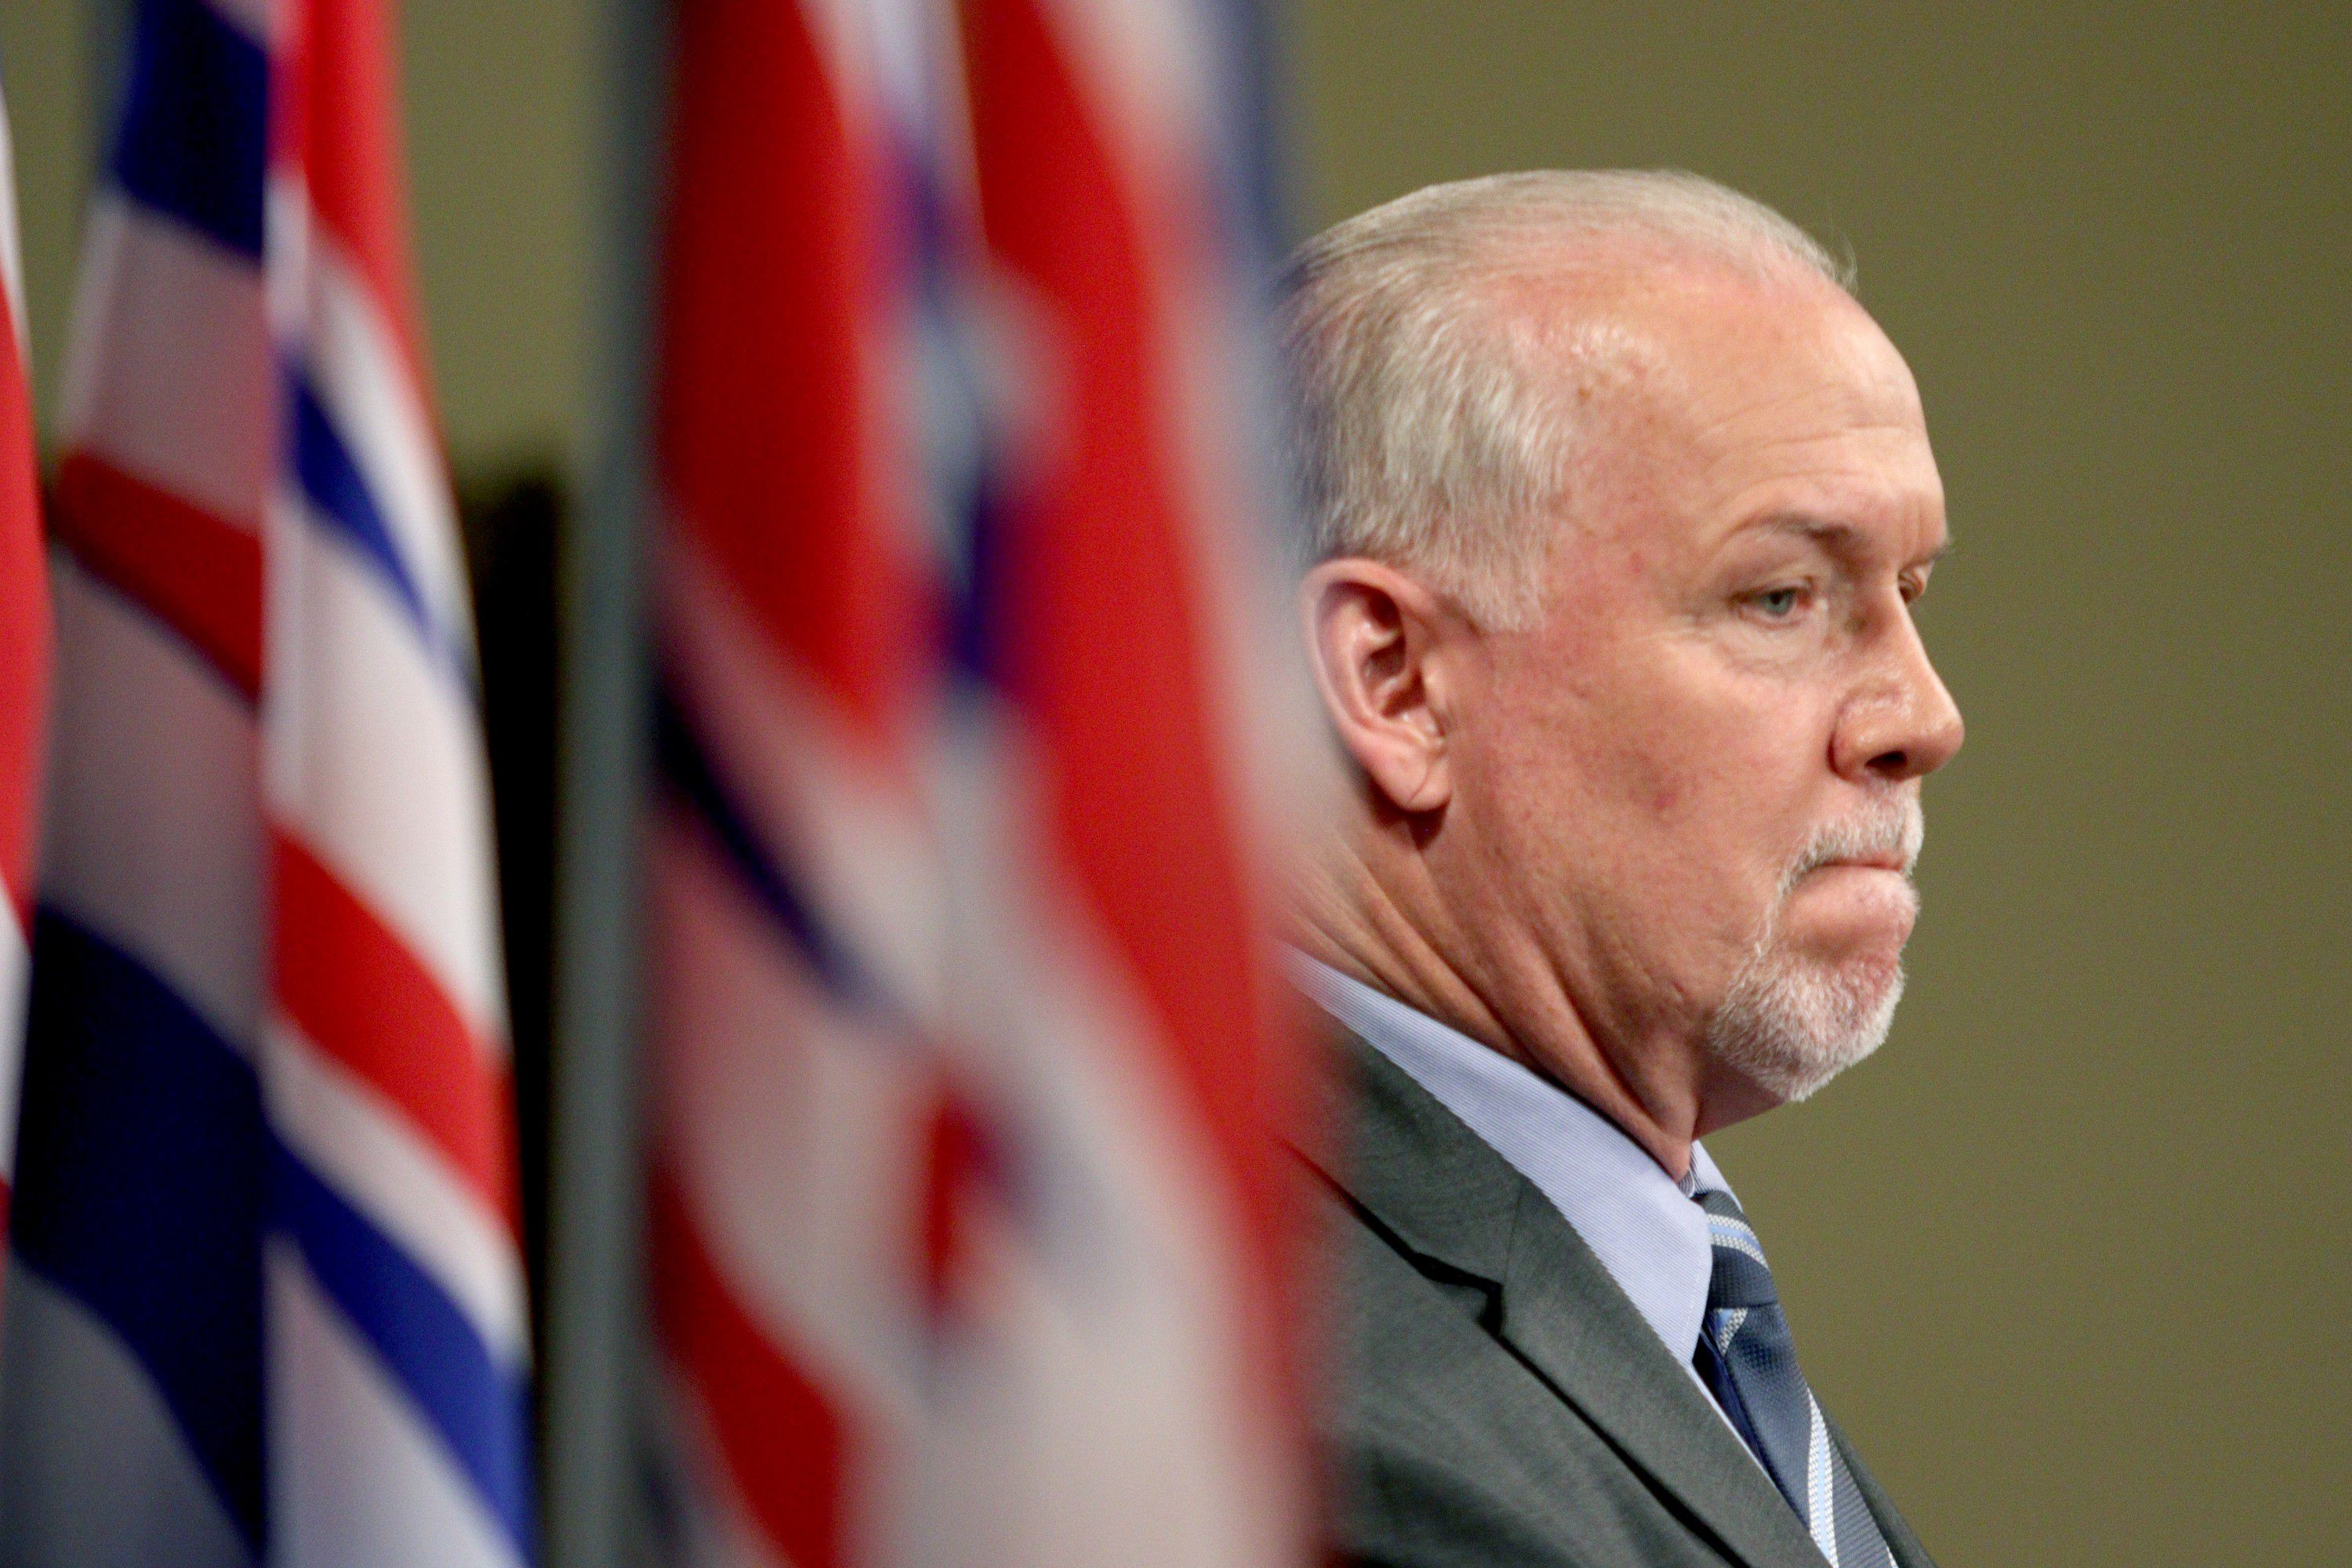 B.C.'s toolbox is almost empty, Trans Mountain readies shovels